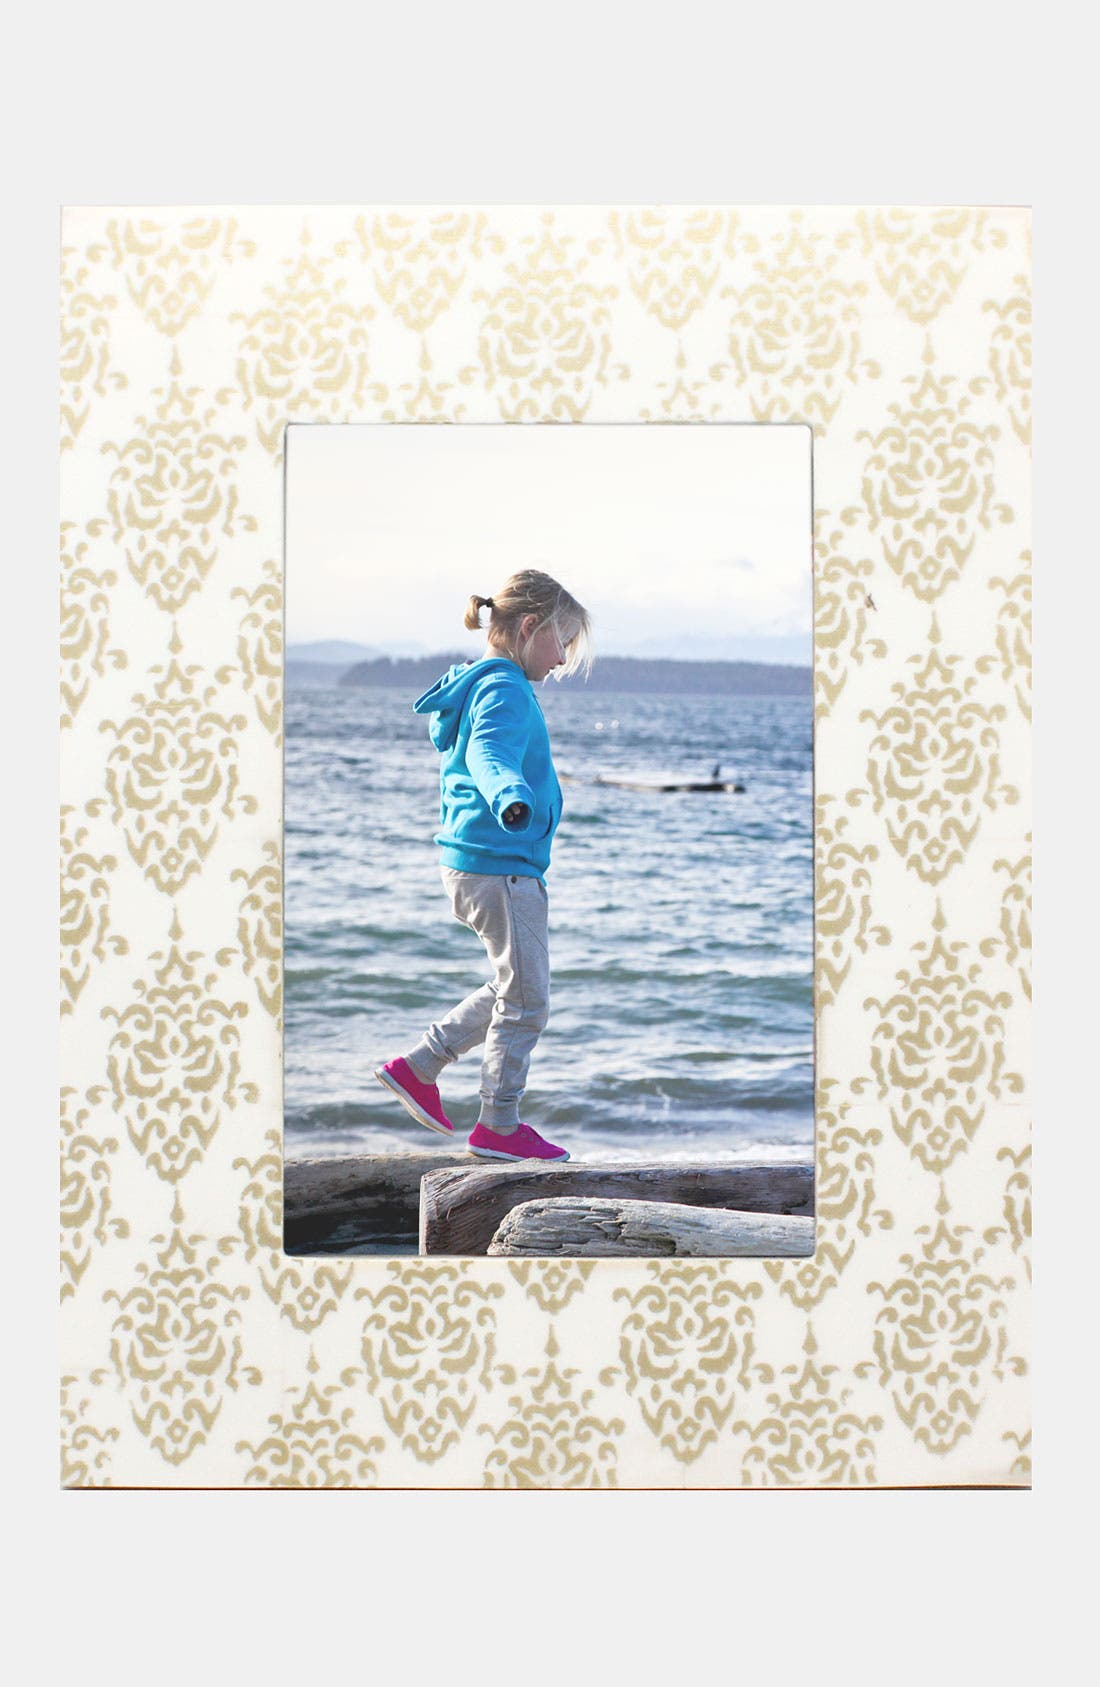 Alternate Image 1 Selected - Bohemian Picture Frame (4x6) (Nordstrom Exclusive)